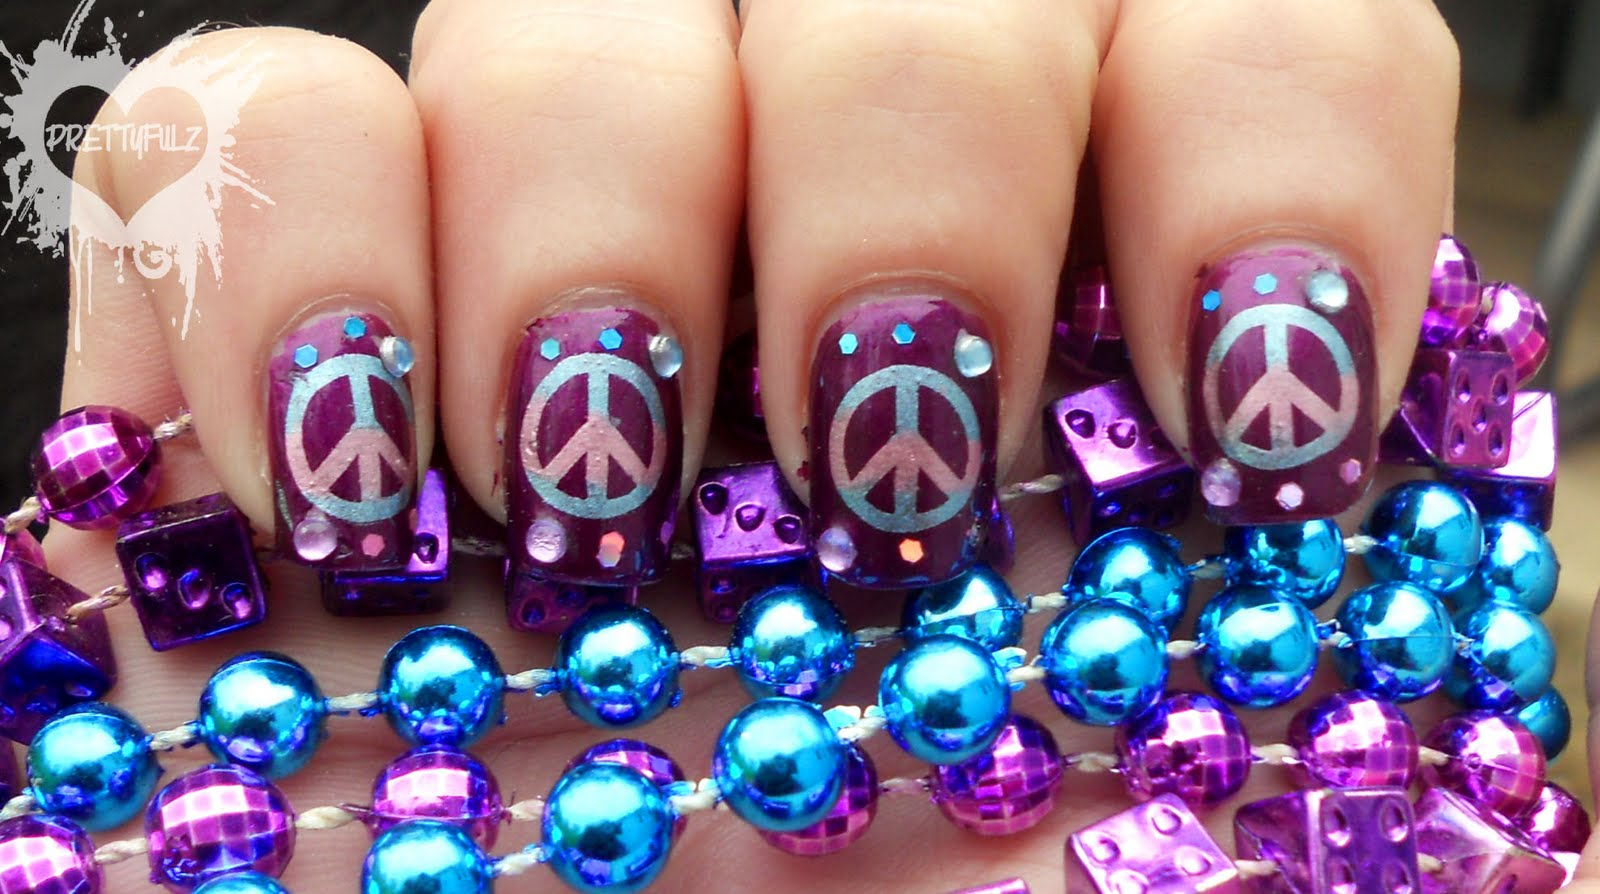 This Peace Sign Nail Art Design Was Completely Unplanned But I Absolutely Love The Way It Came Out Knew Wanted To Do A Multi Colored Stamp And